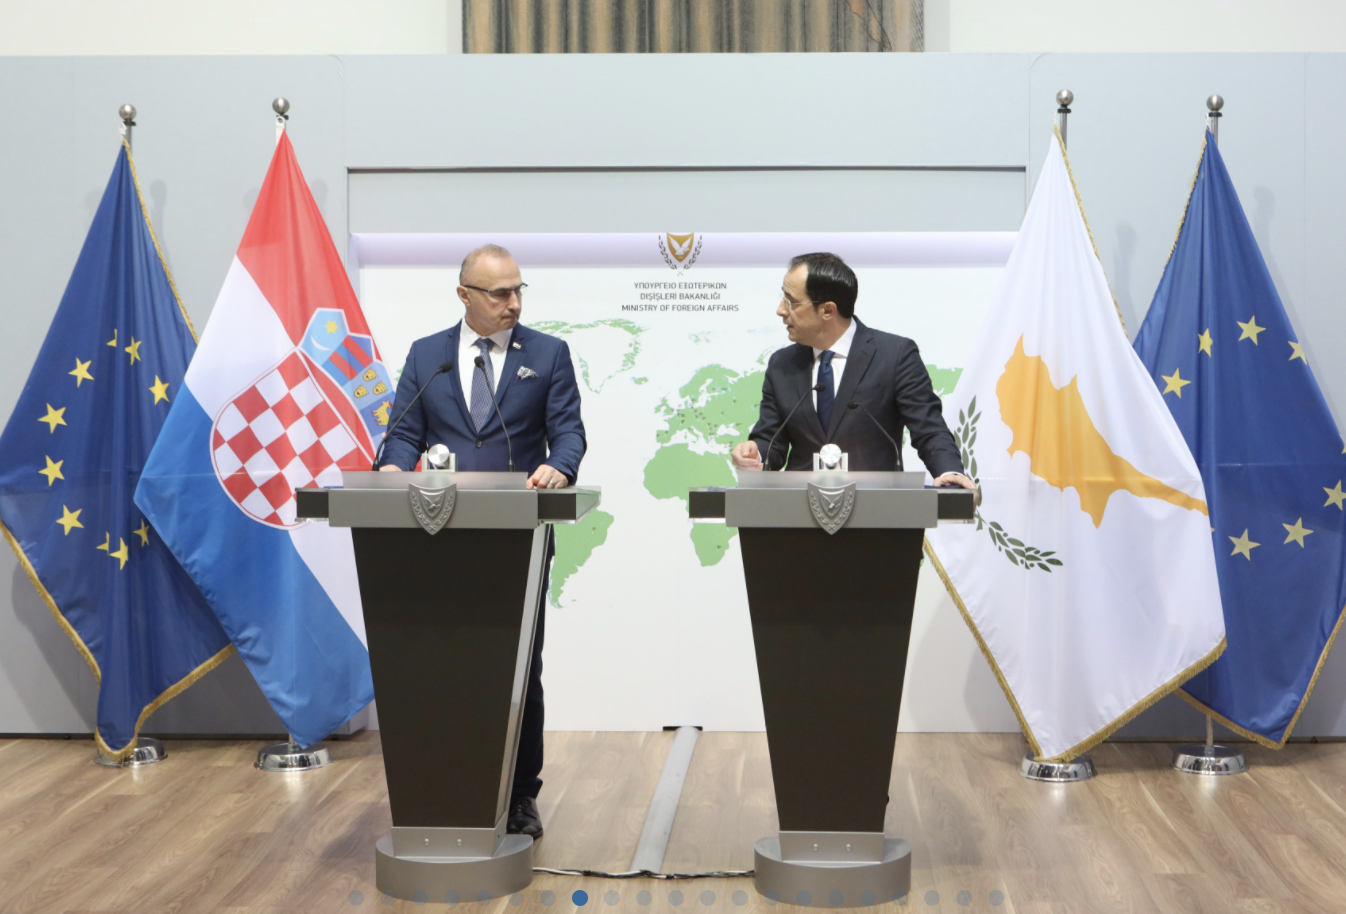 Croatia: Grlić Radman, Christodoulides discuss deepening of bilateral relations and co-operation in Nicosia